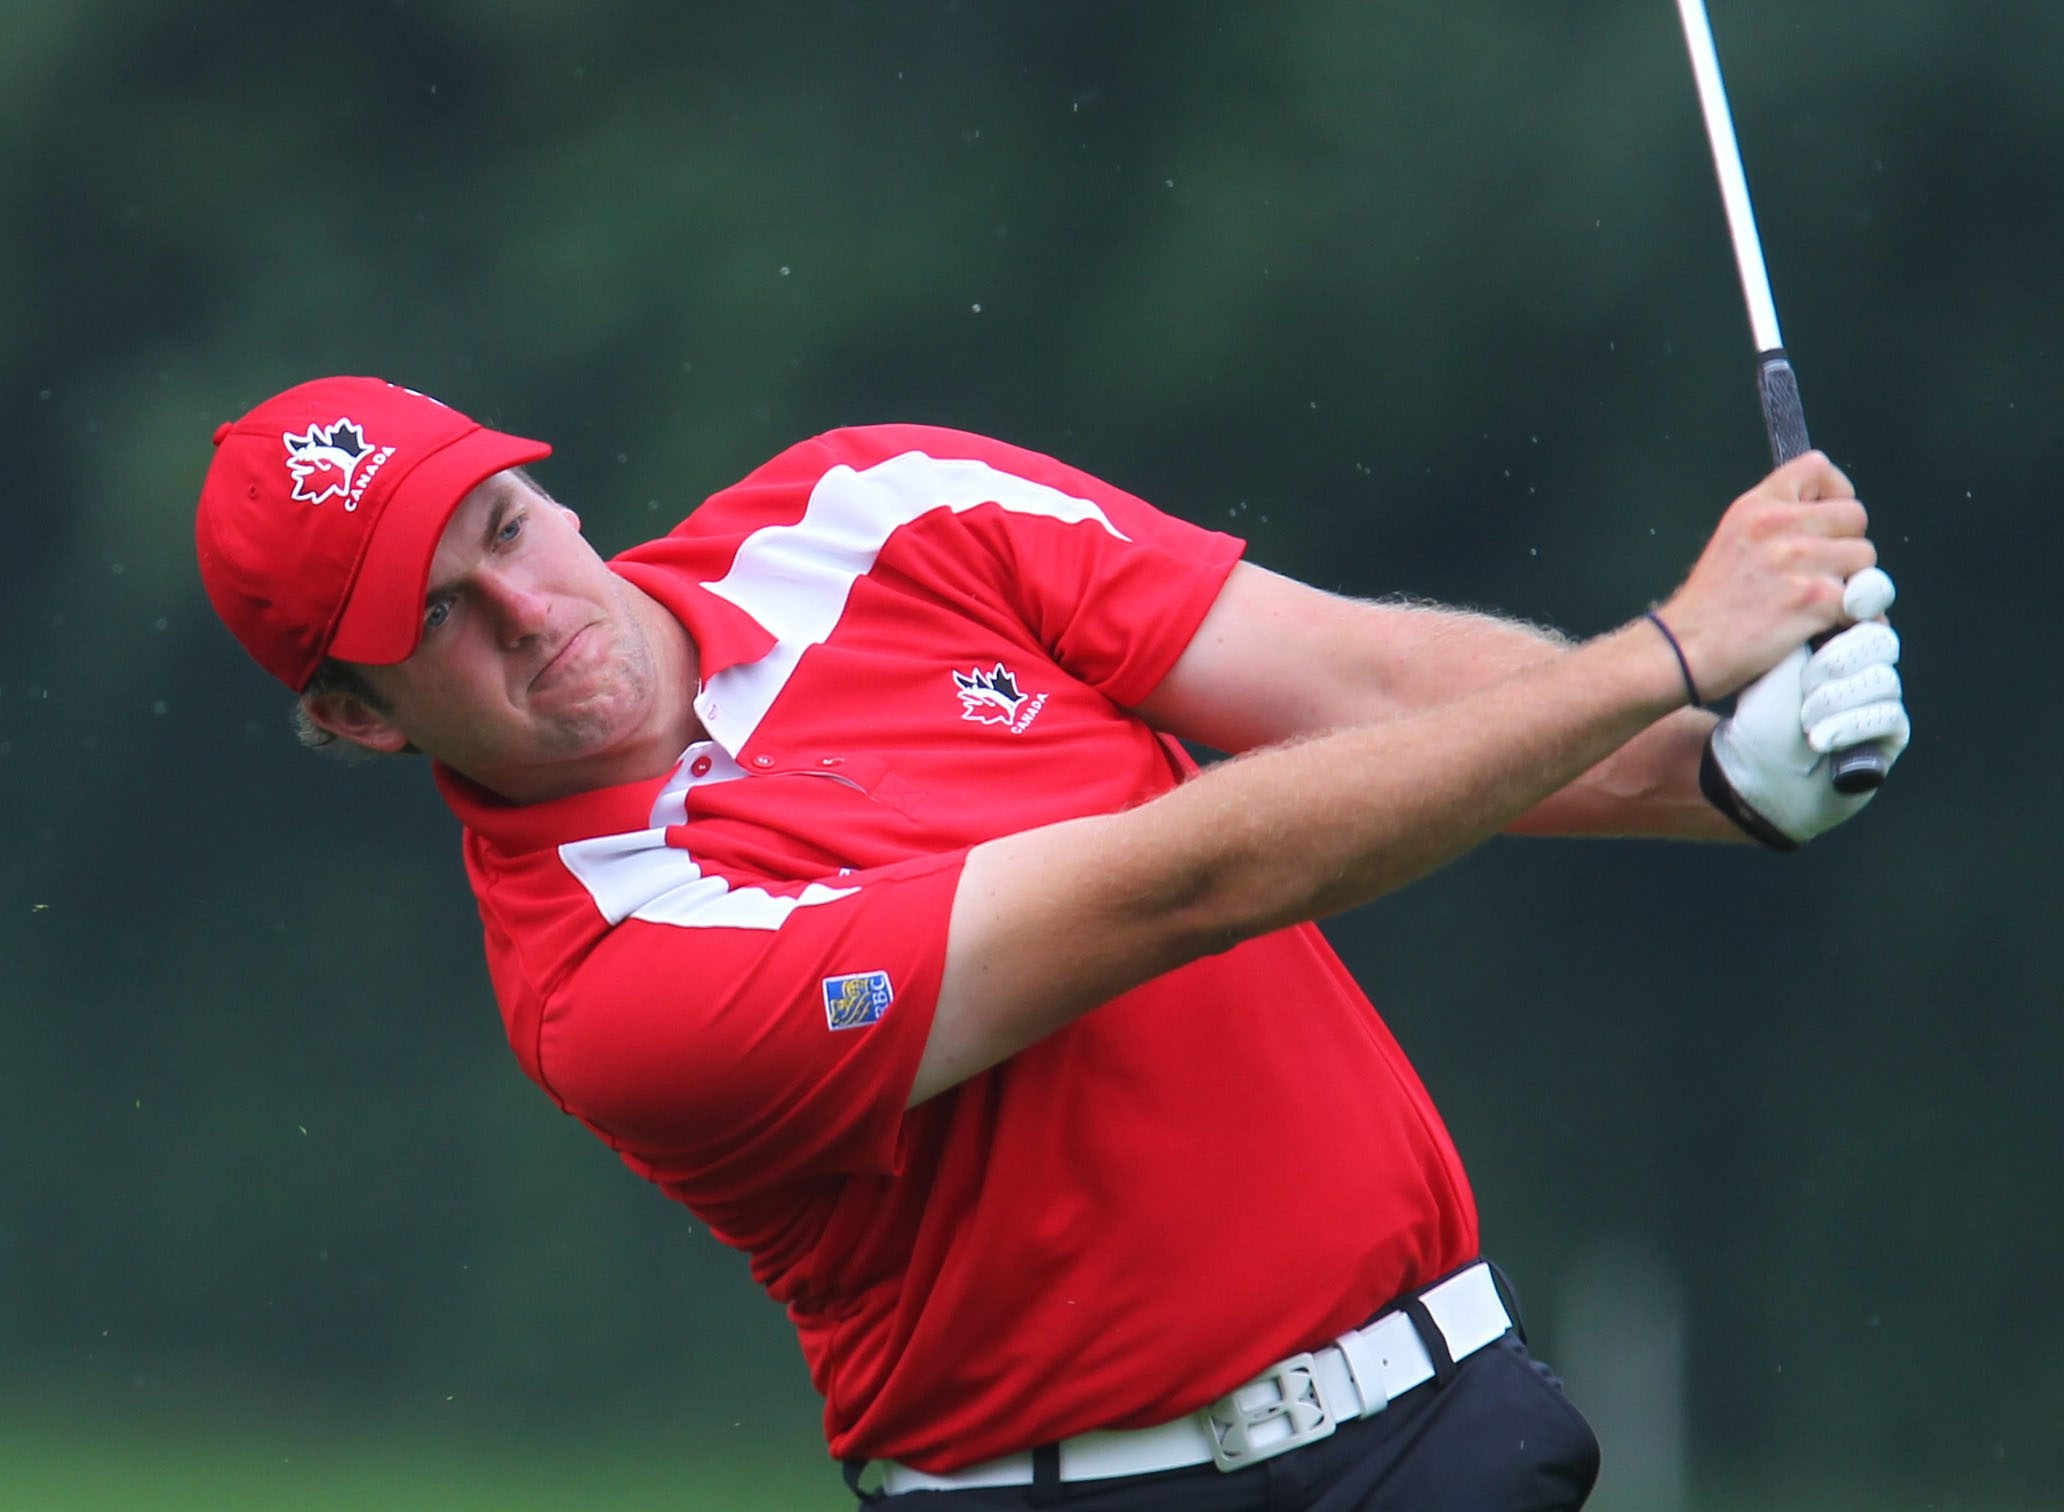 Taylor Pendrith made it difficult for others to catch him during the final round of the Porter Cup at Niagara Falls Country Club.